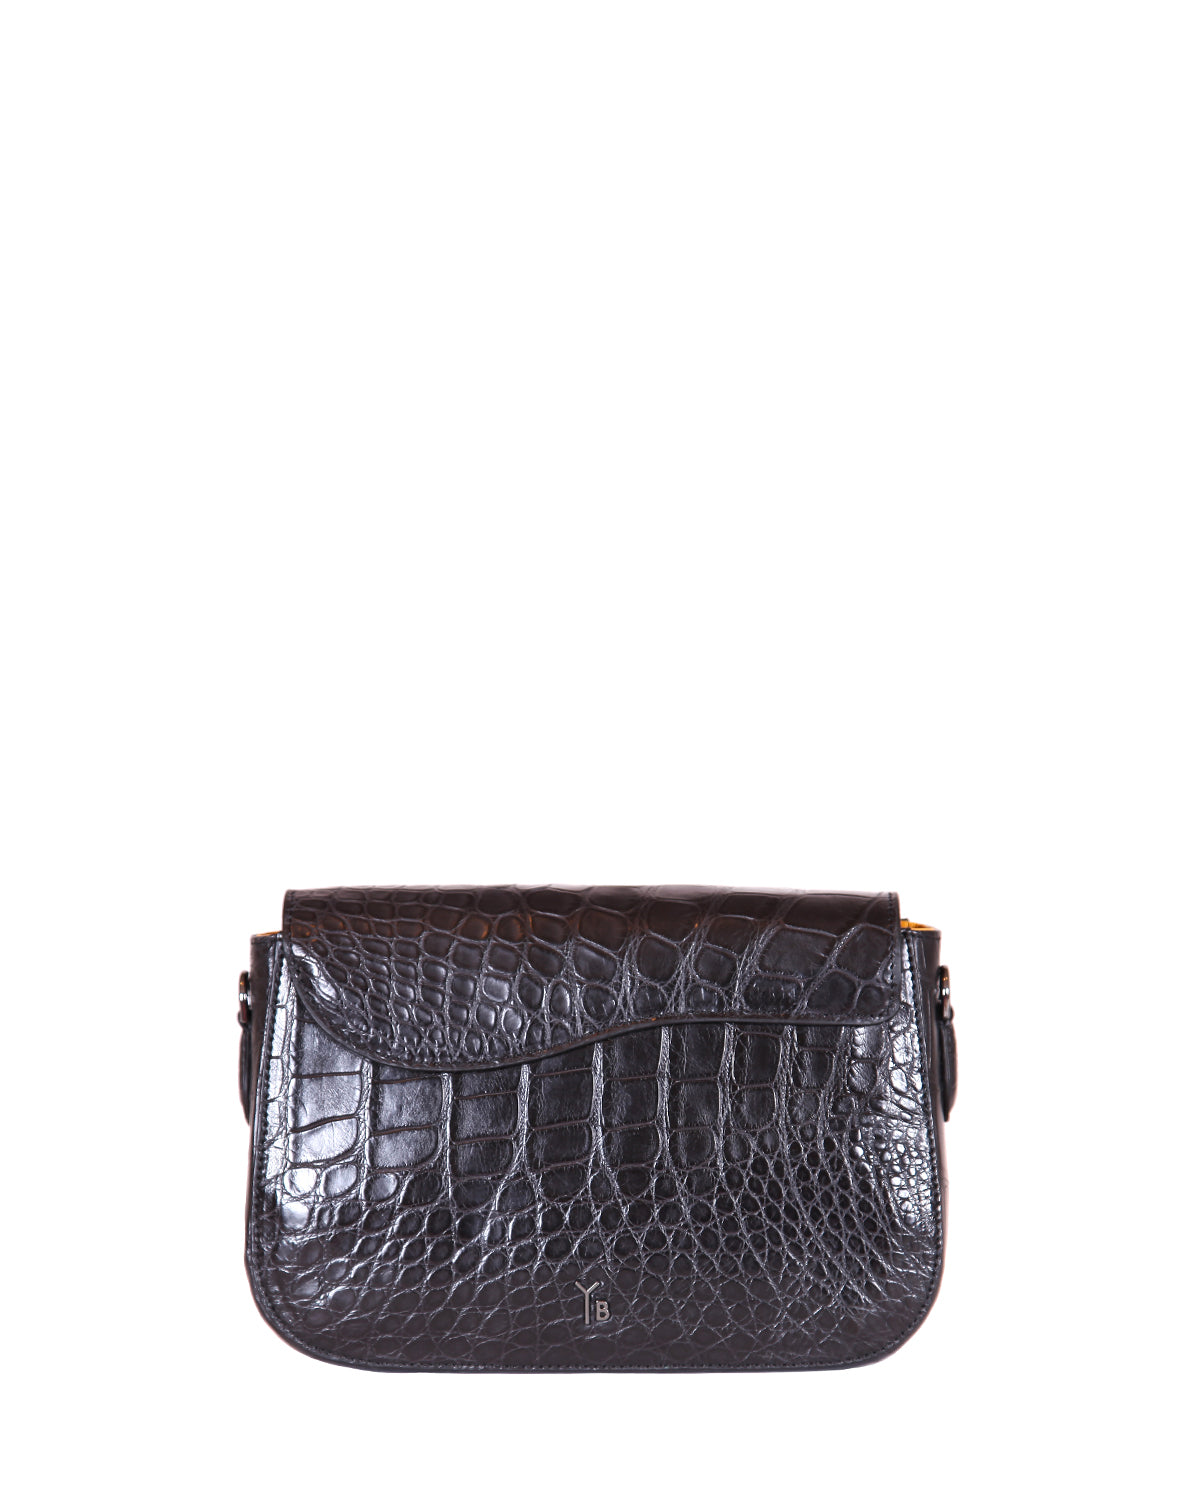 Yara Bashoor Edgar Shoulder Handbag Black Gunmetal Silver Genuine American Alligator Back View